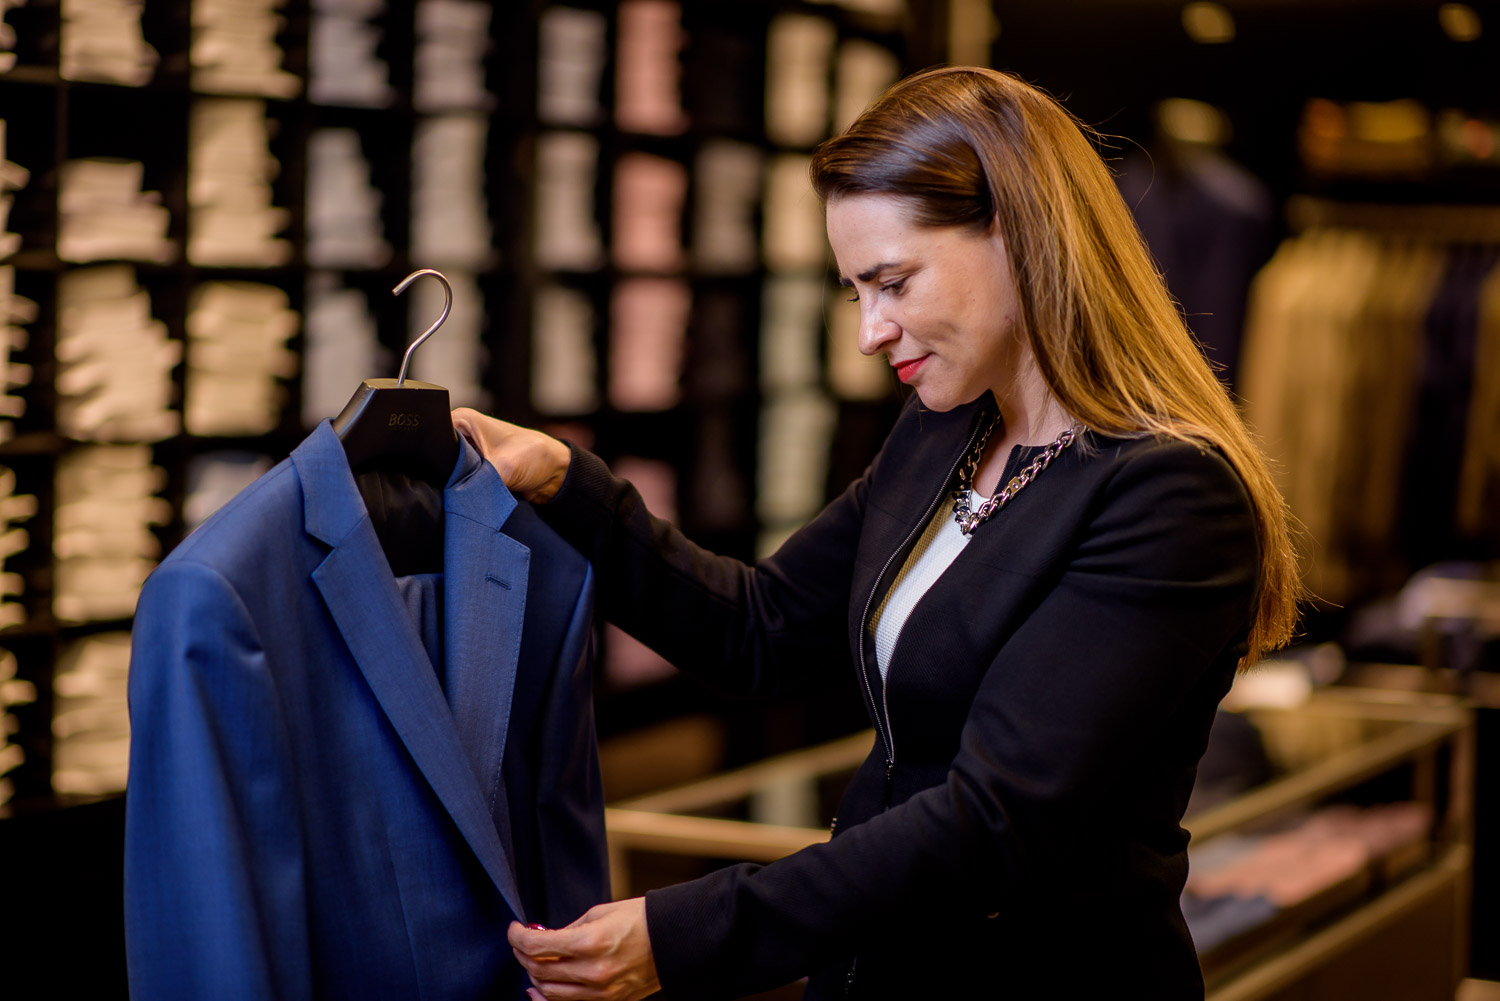 What is a bespoke suit? Wat is een kostuum op maat?